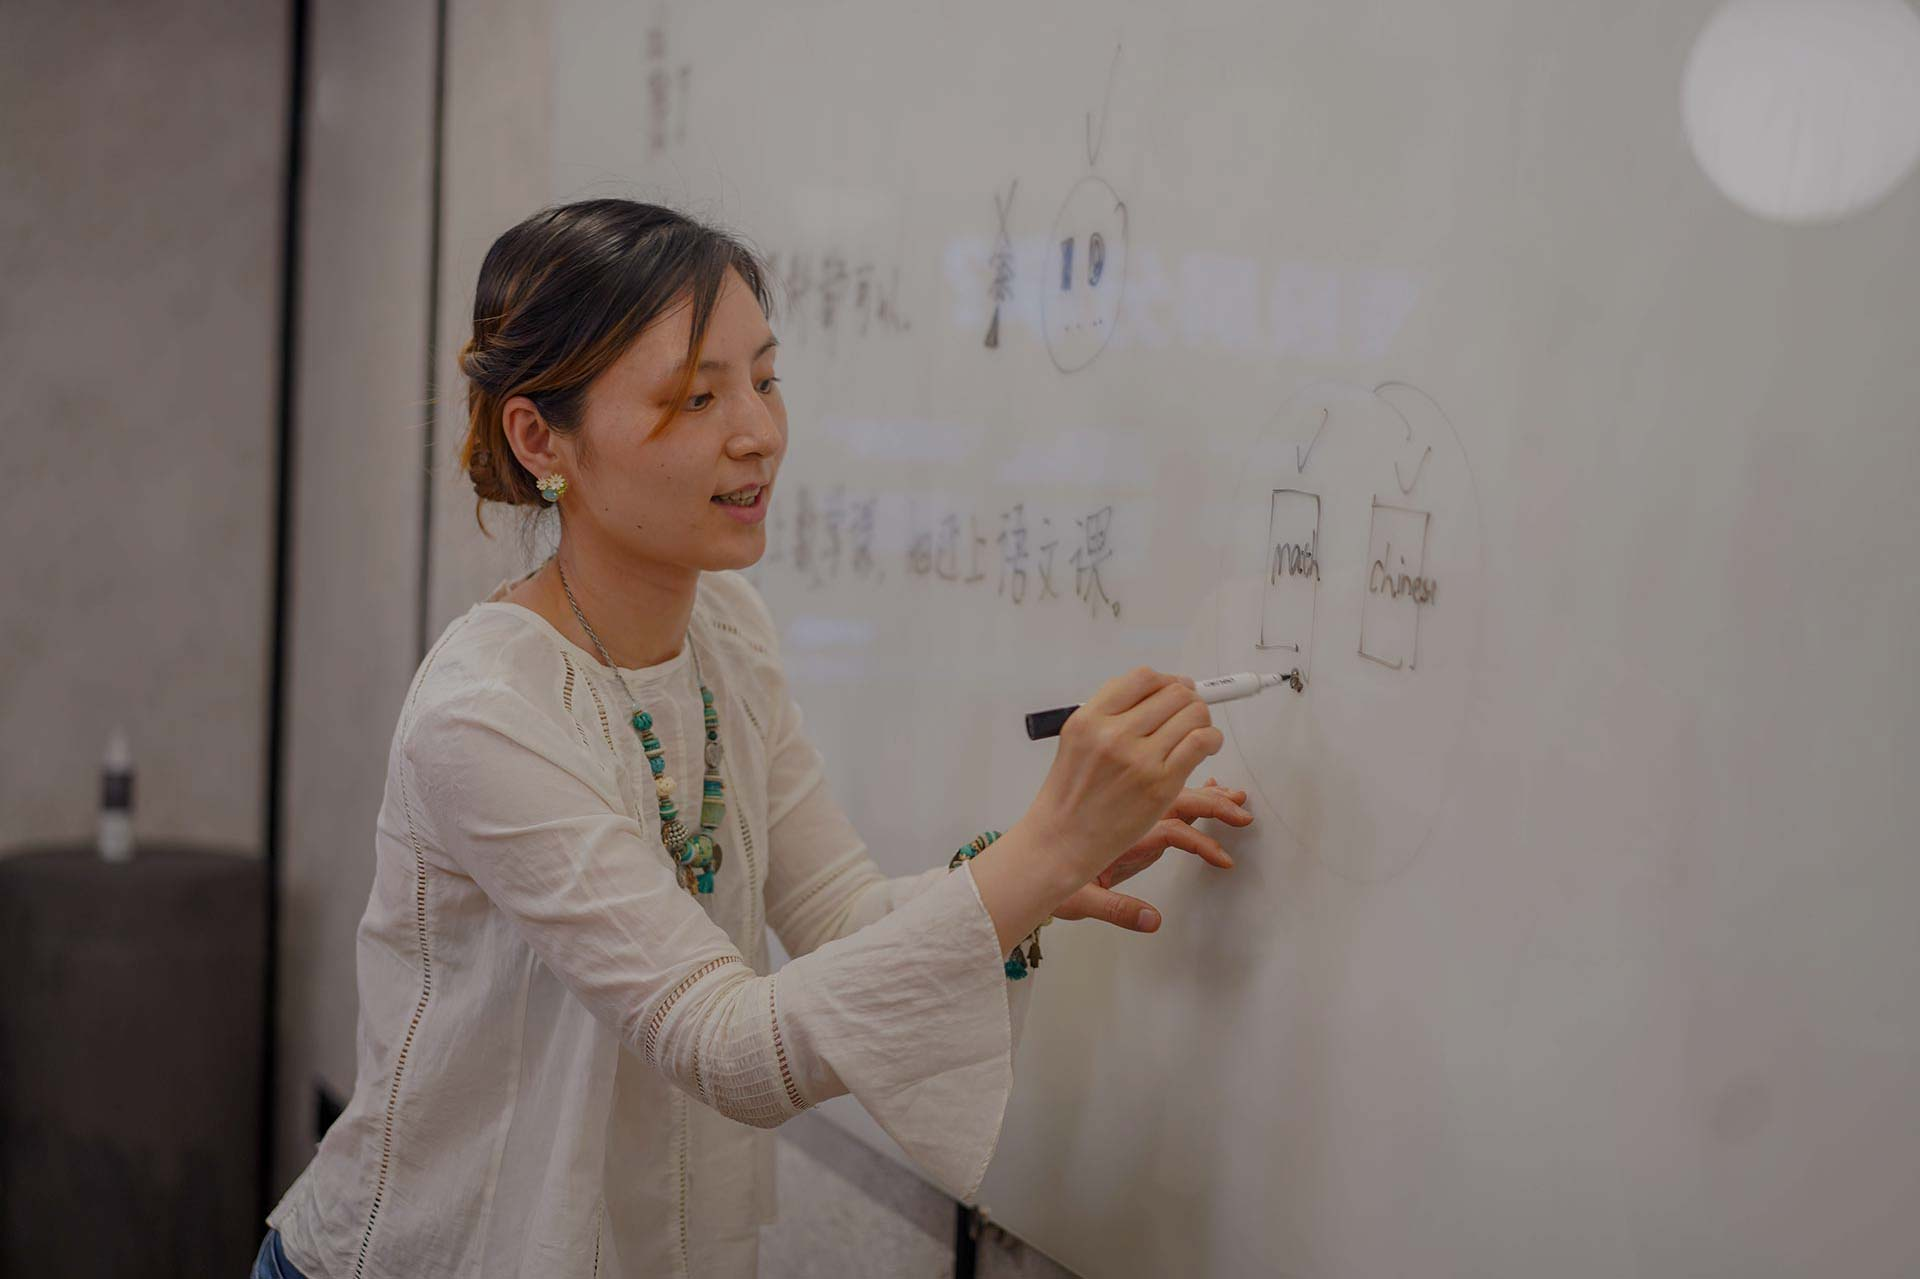 Teacher giving chinese lessons on a whiteboard